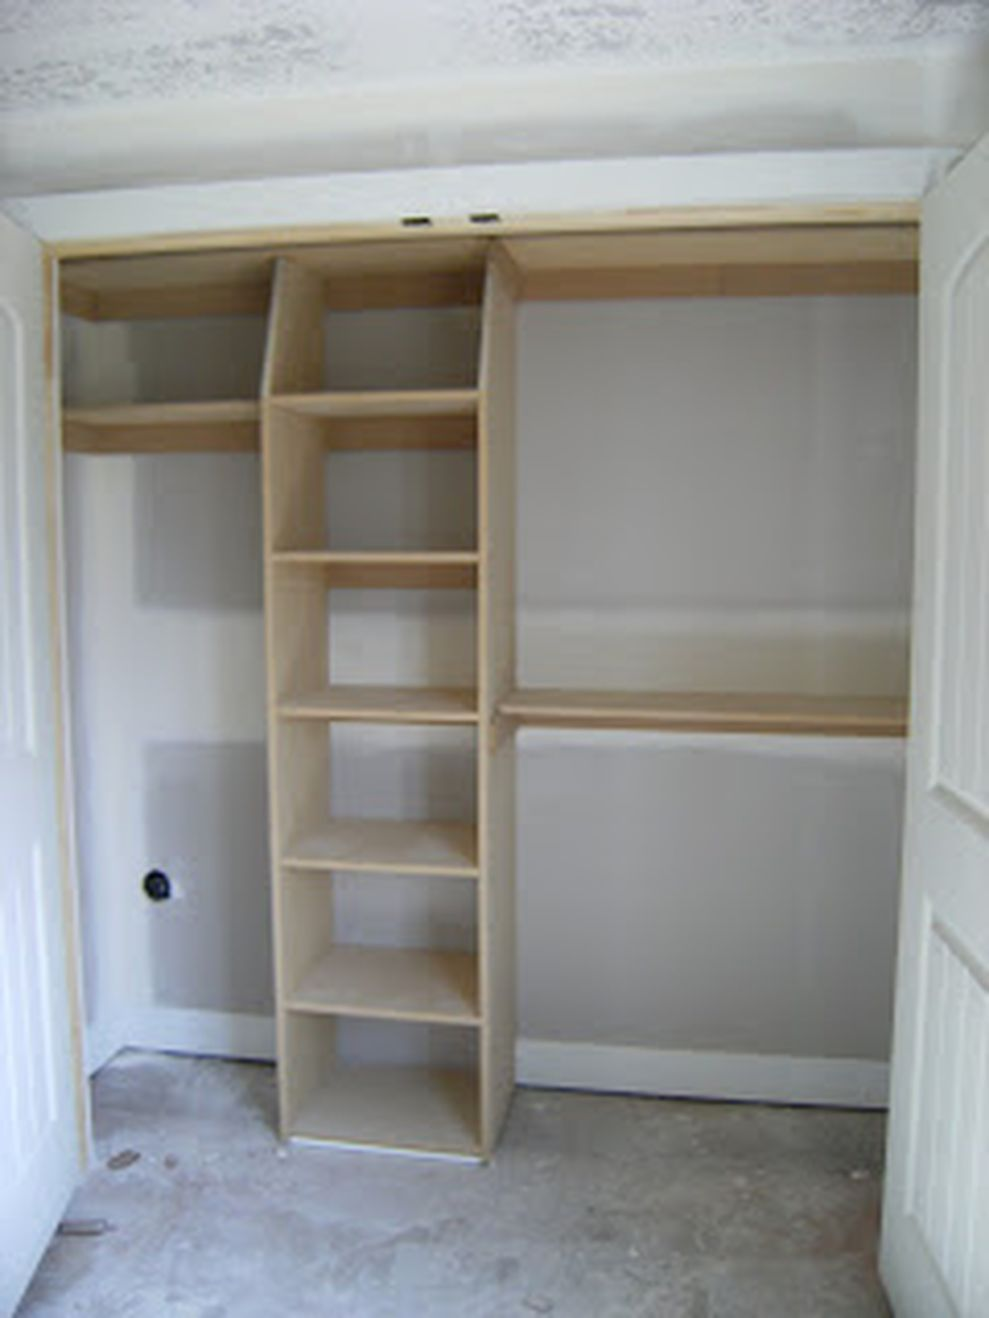 71 Easy And Affordable Diy Wood Closet Shelves Ideas In 2020 Closet Layout Closet Remodel Closet Bedroom